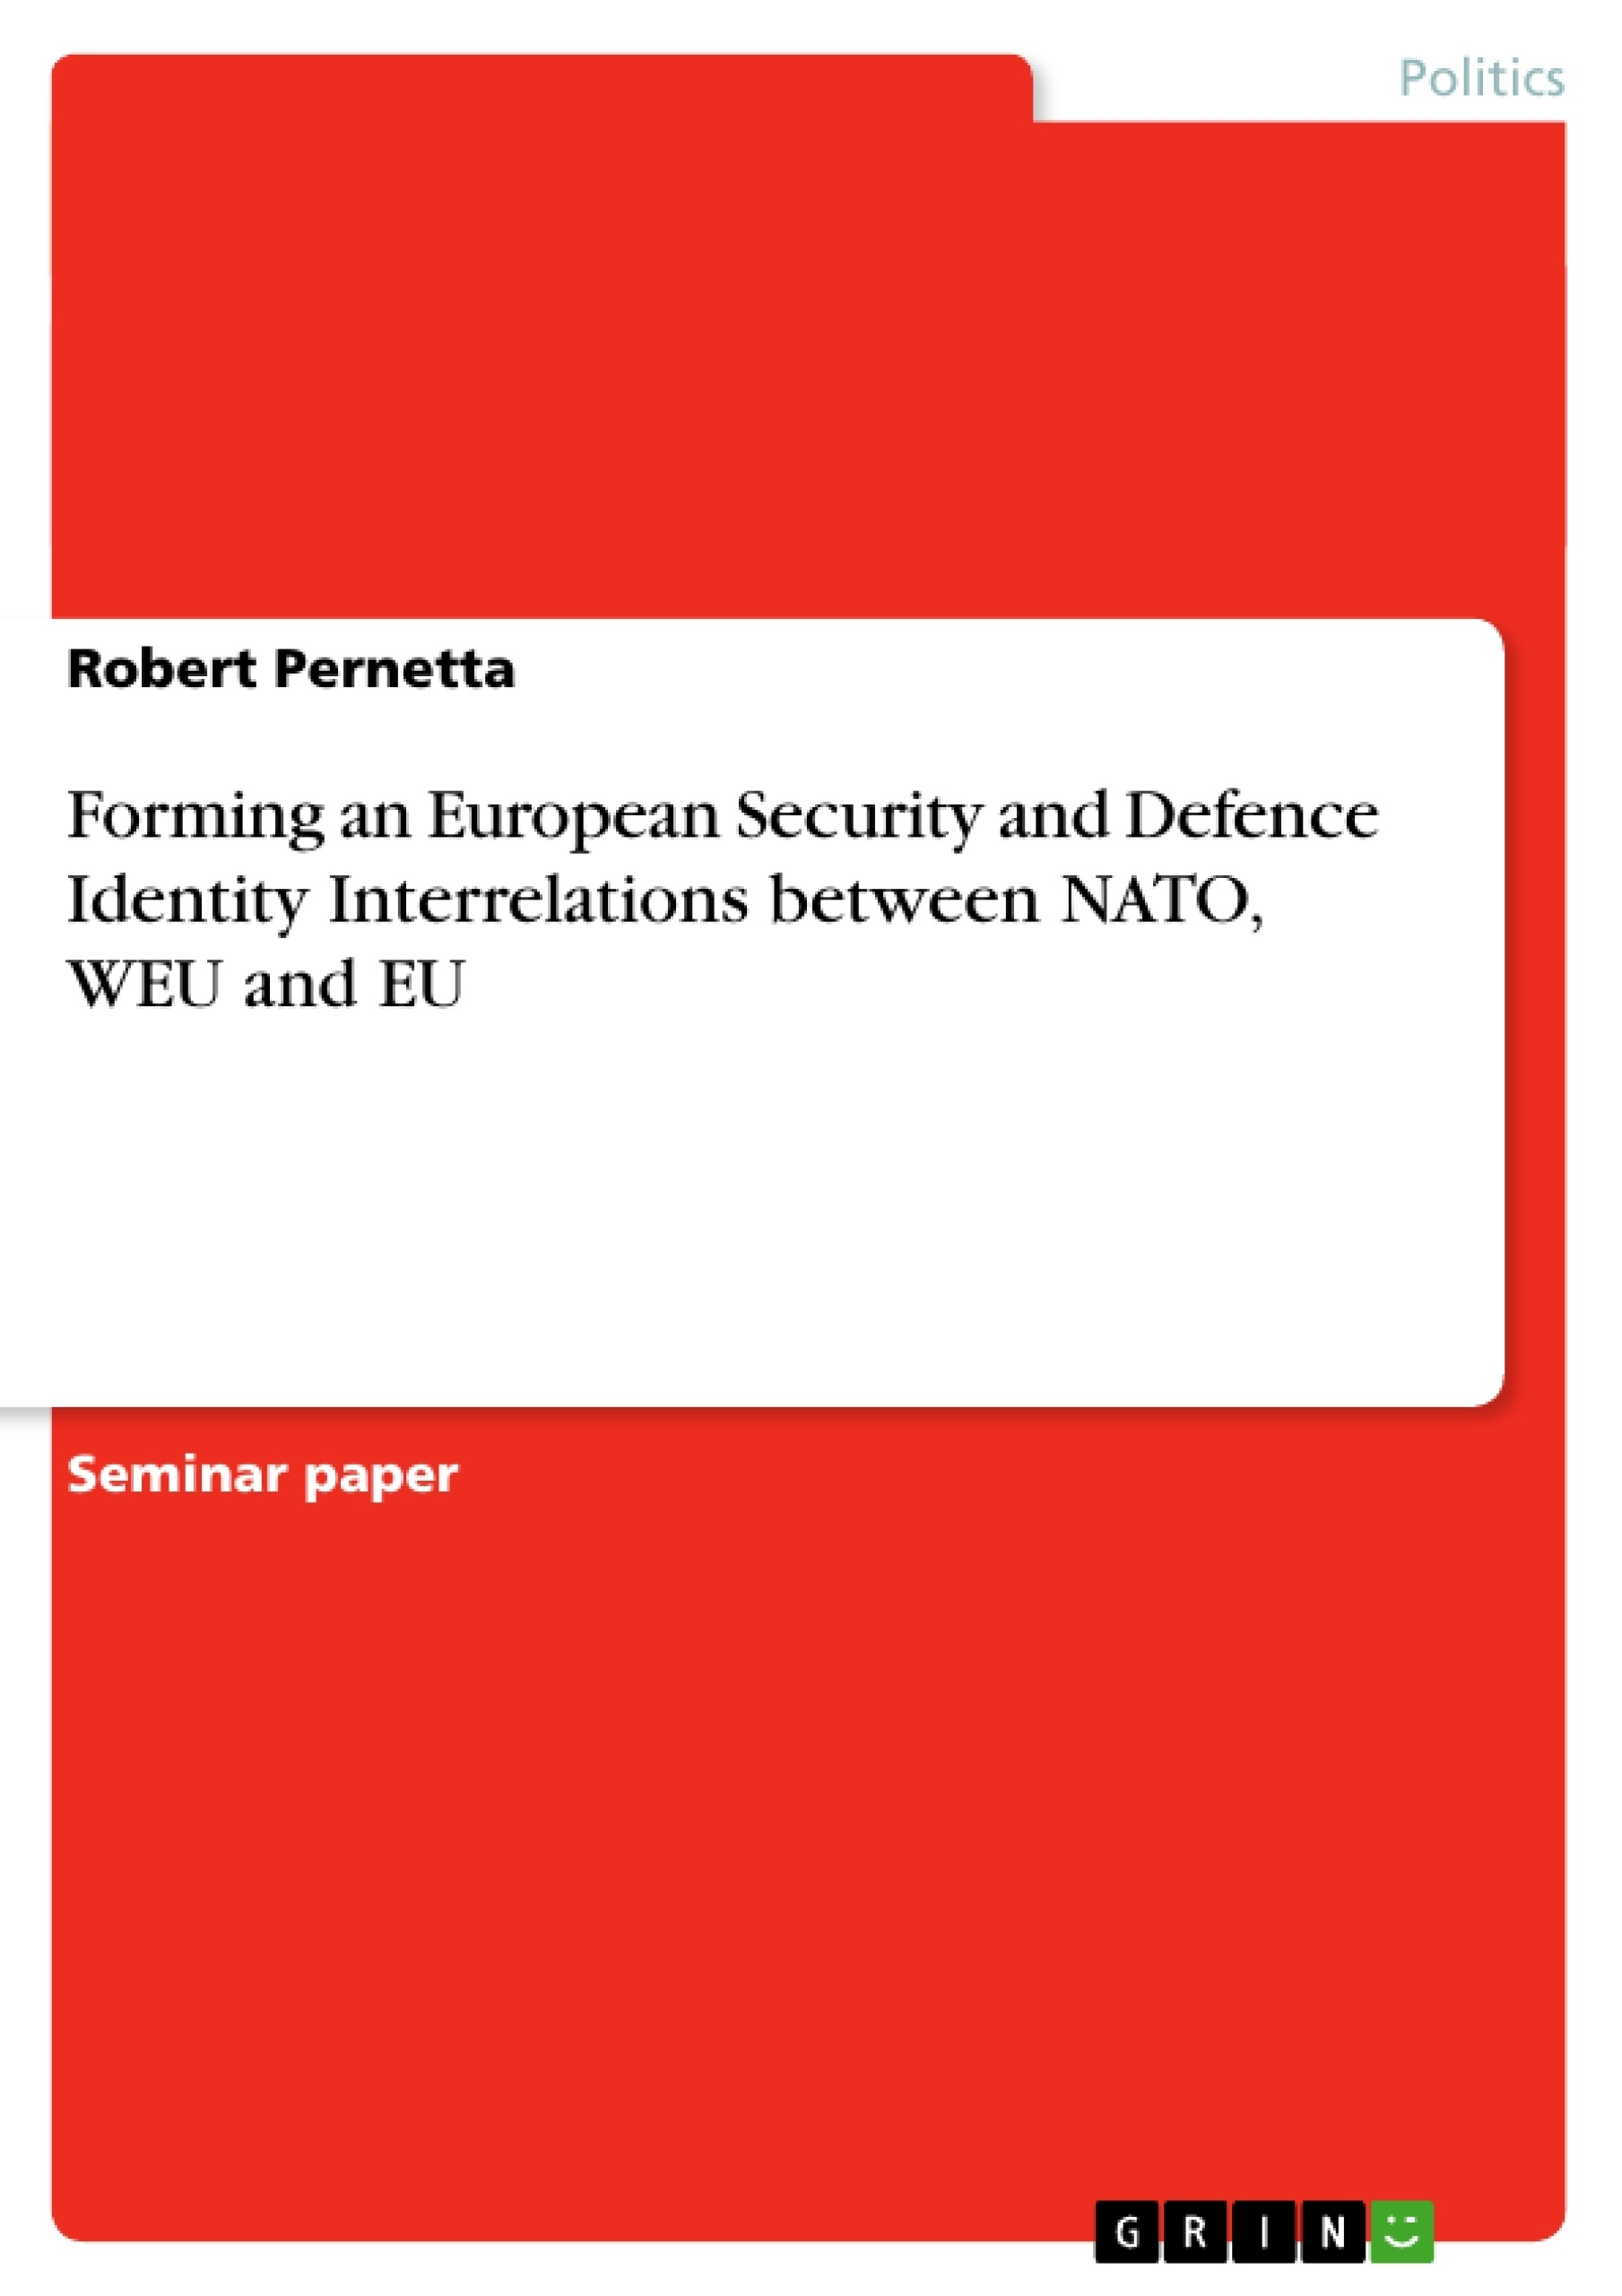 Title: Forming an European Security and Defence Identity Interrelations between NATO, WEU and EU